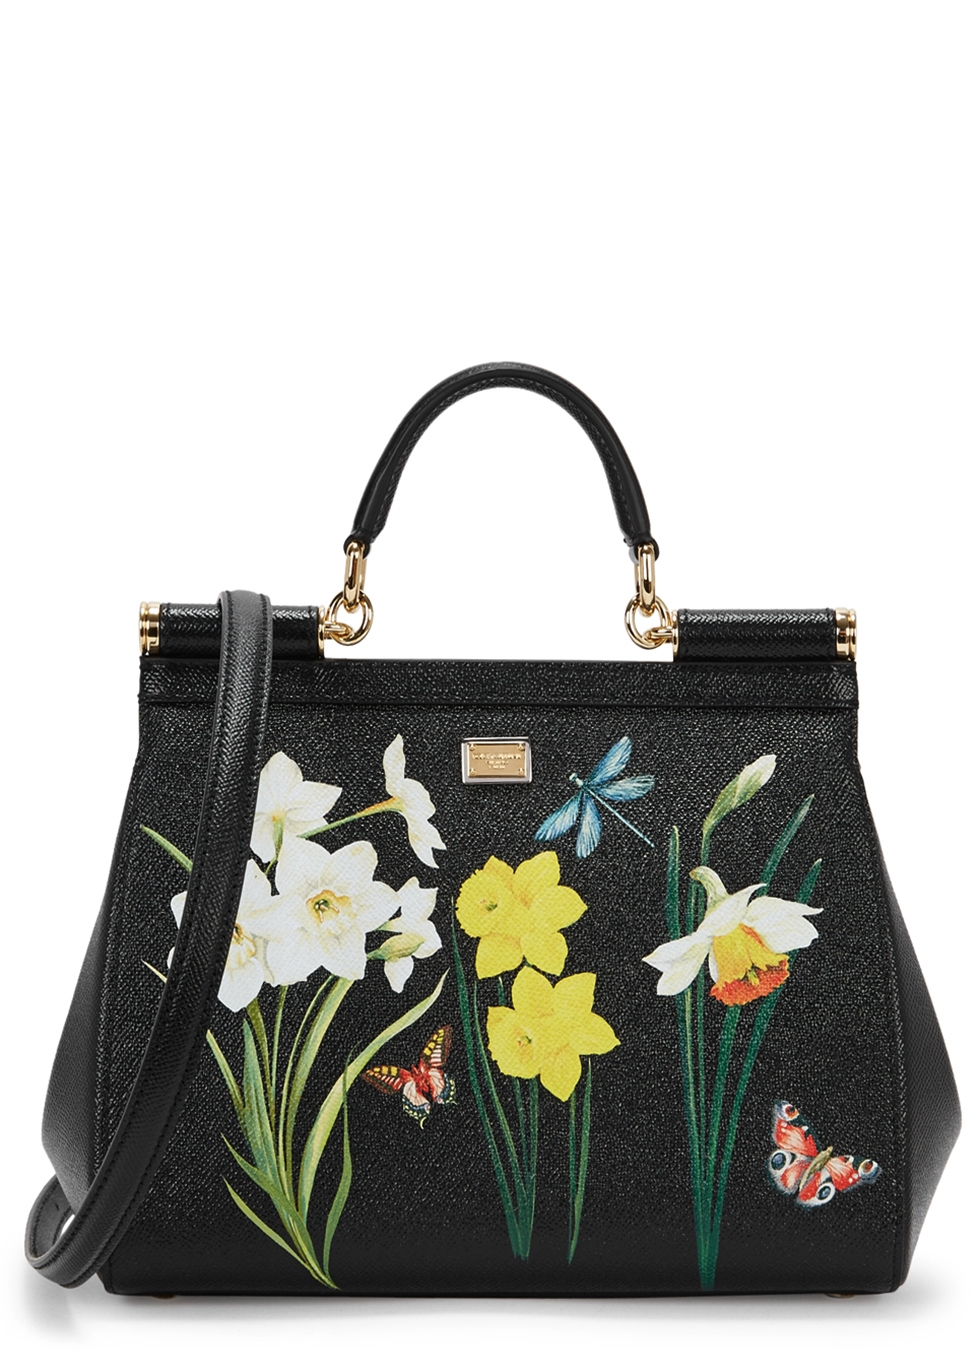 SICILY MEDIUM FLORAL-PRINT LEATHER TOTE